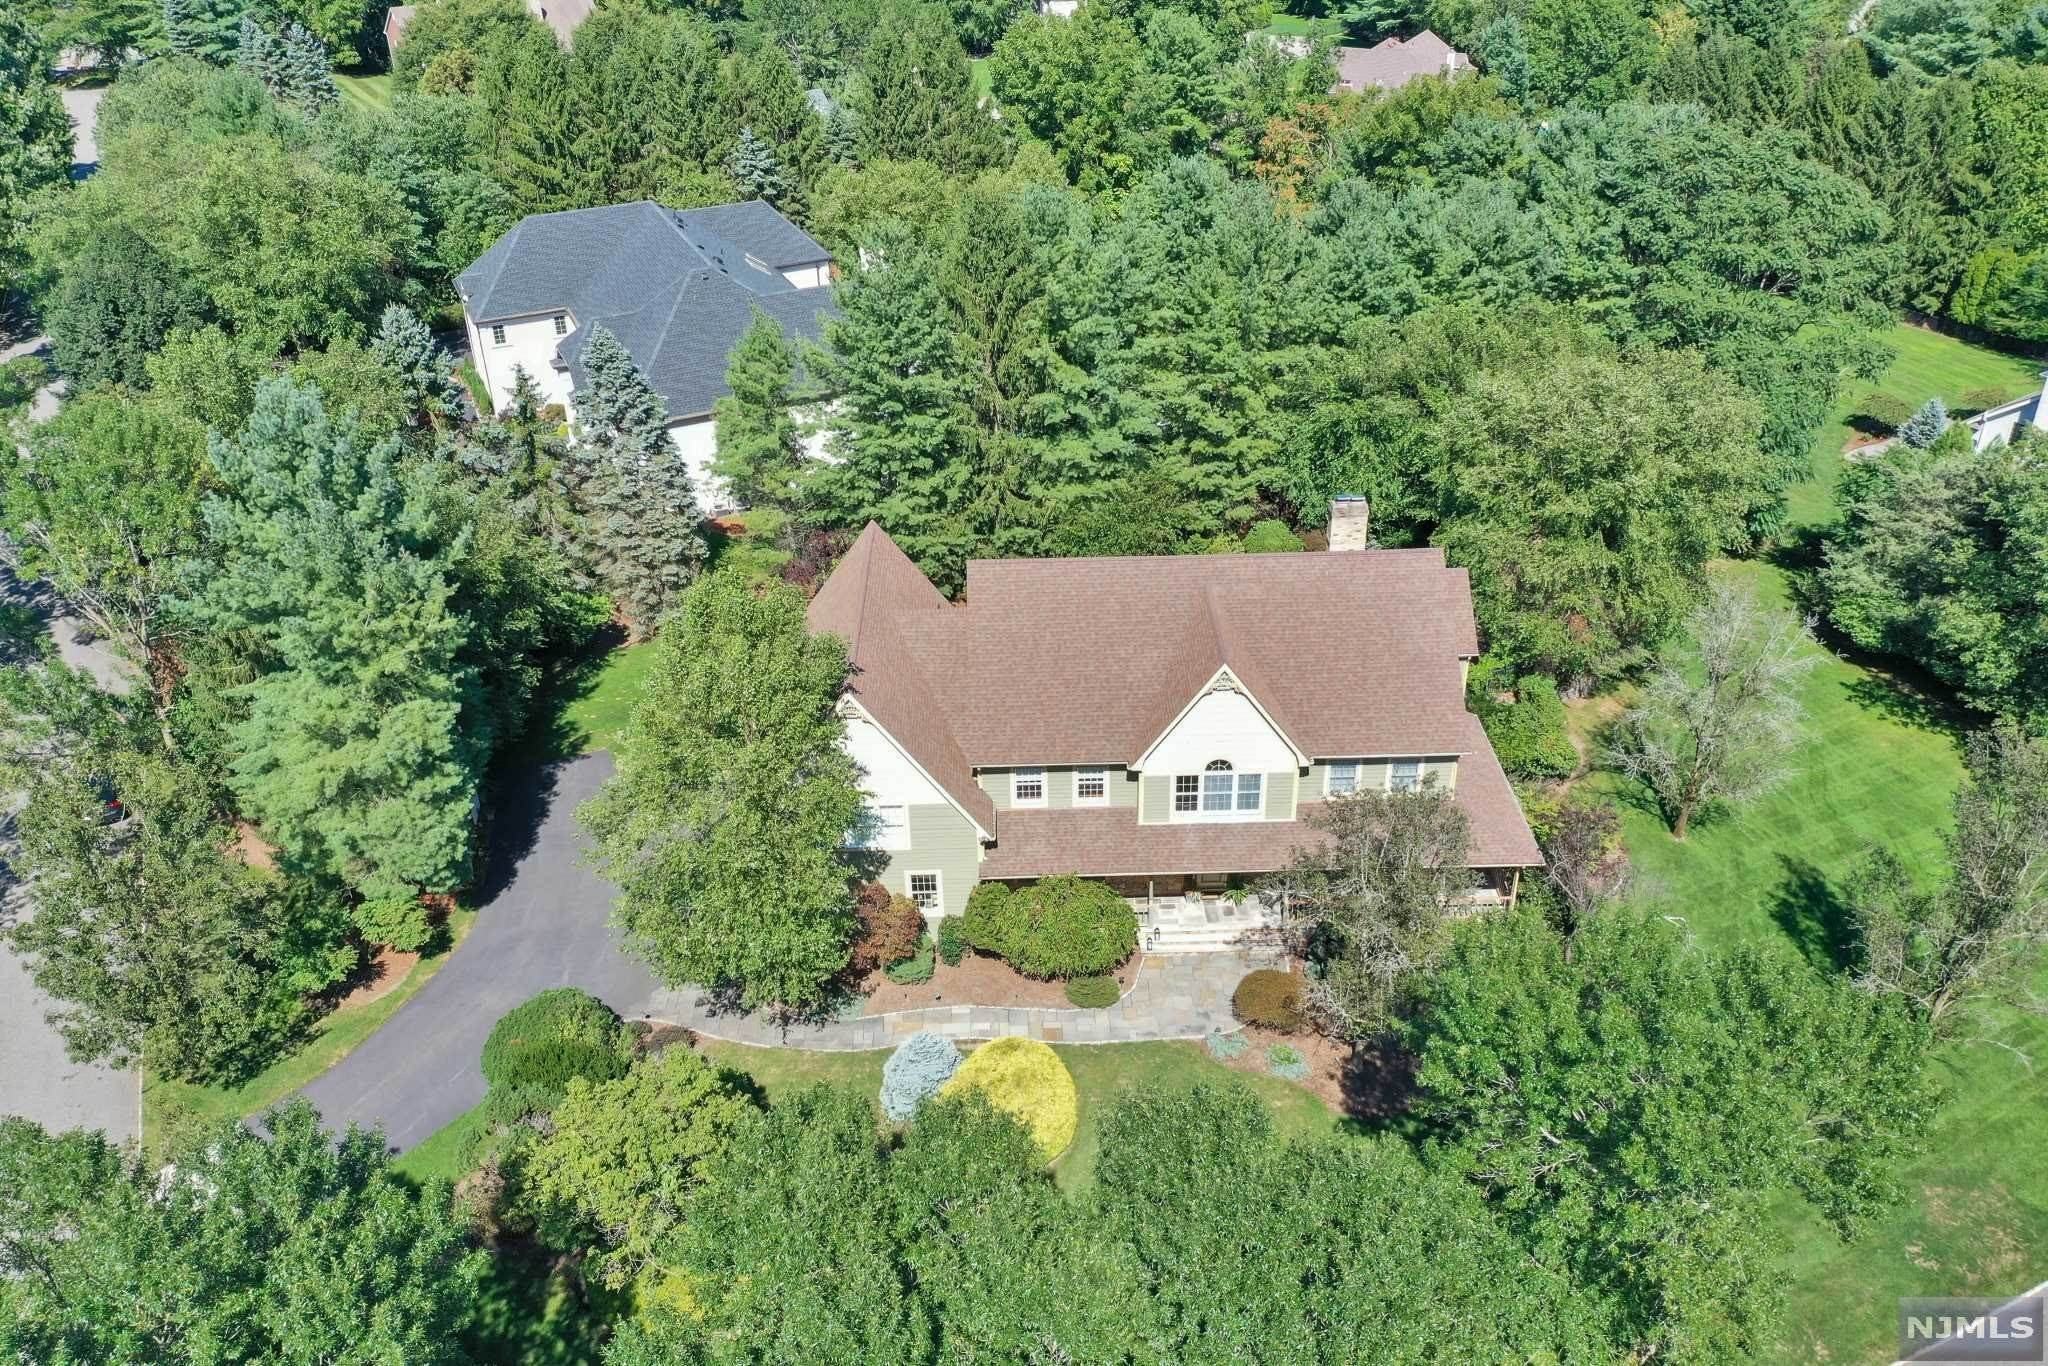 Single Family Home at 15 Sunflower Drive Upper Saddle River, New Jersey, 07458 United States